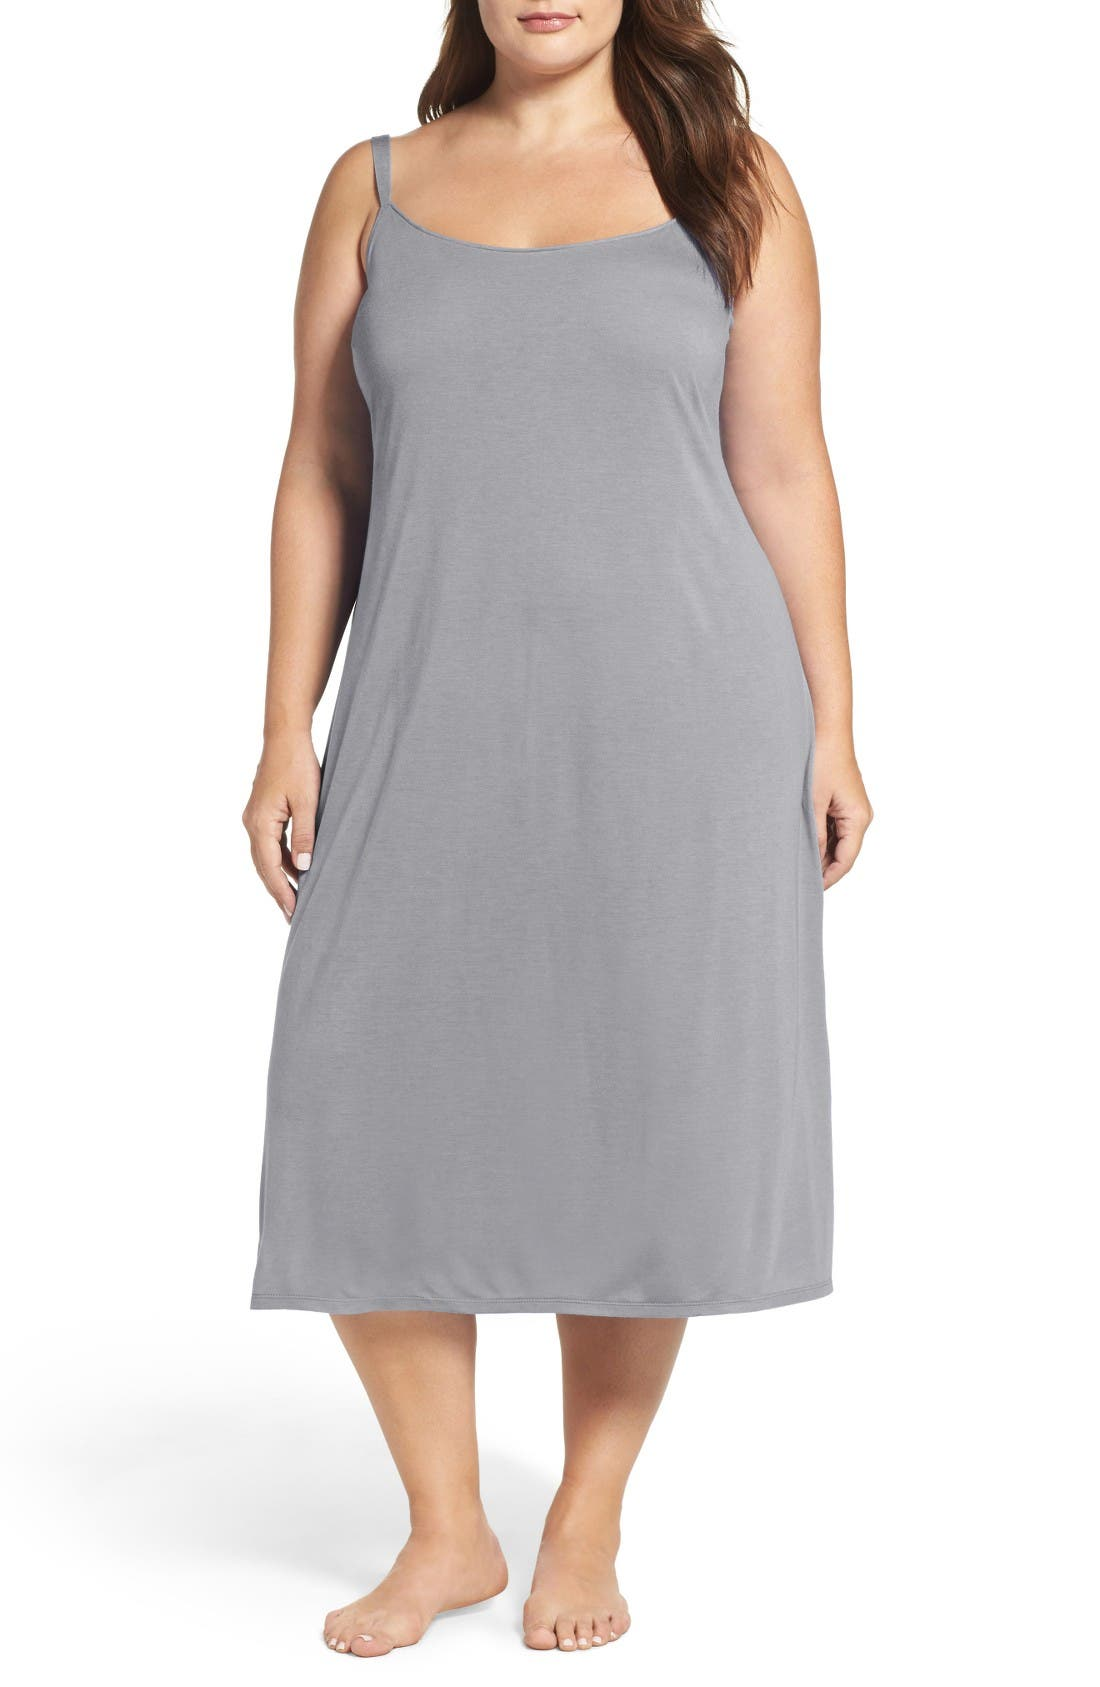 Natori 'Shangri La' Nightgown (Plus Size)